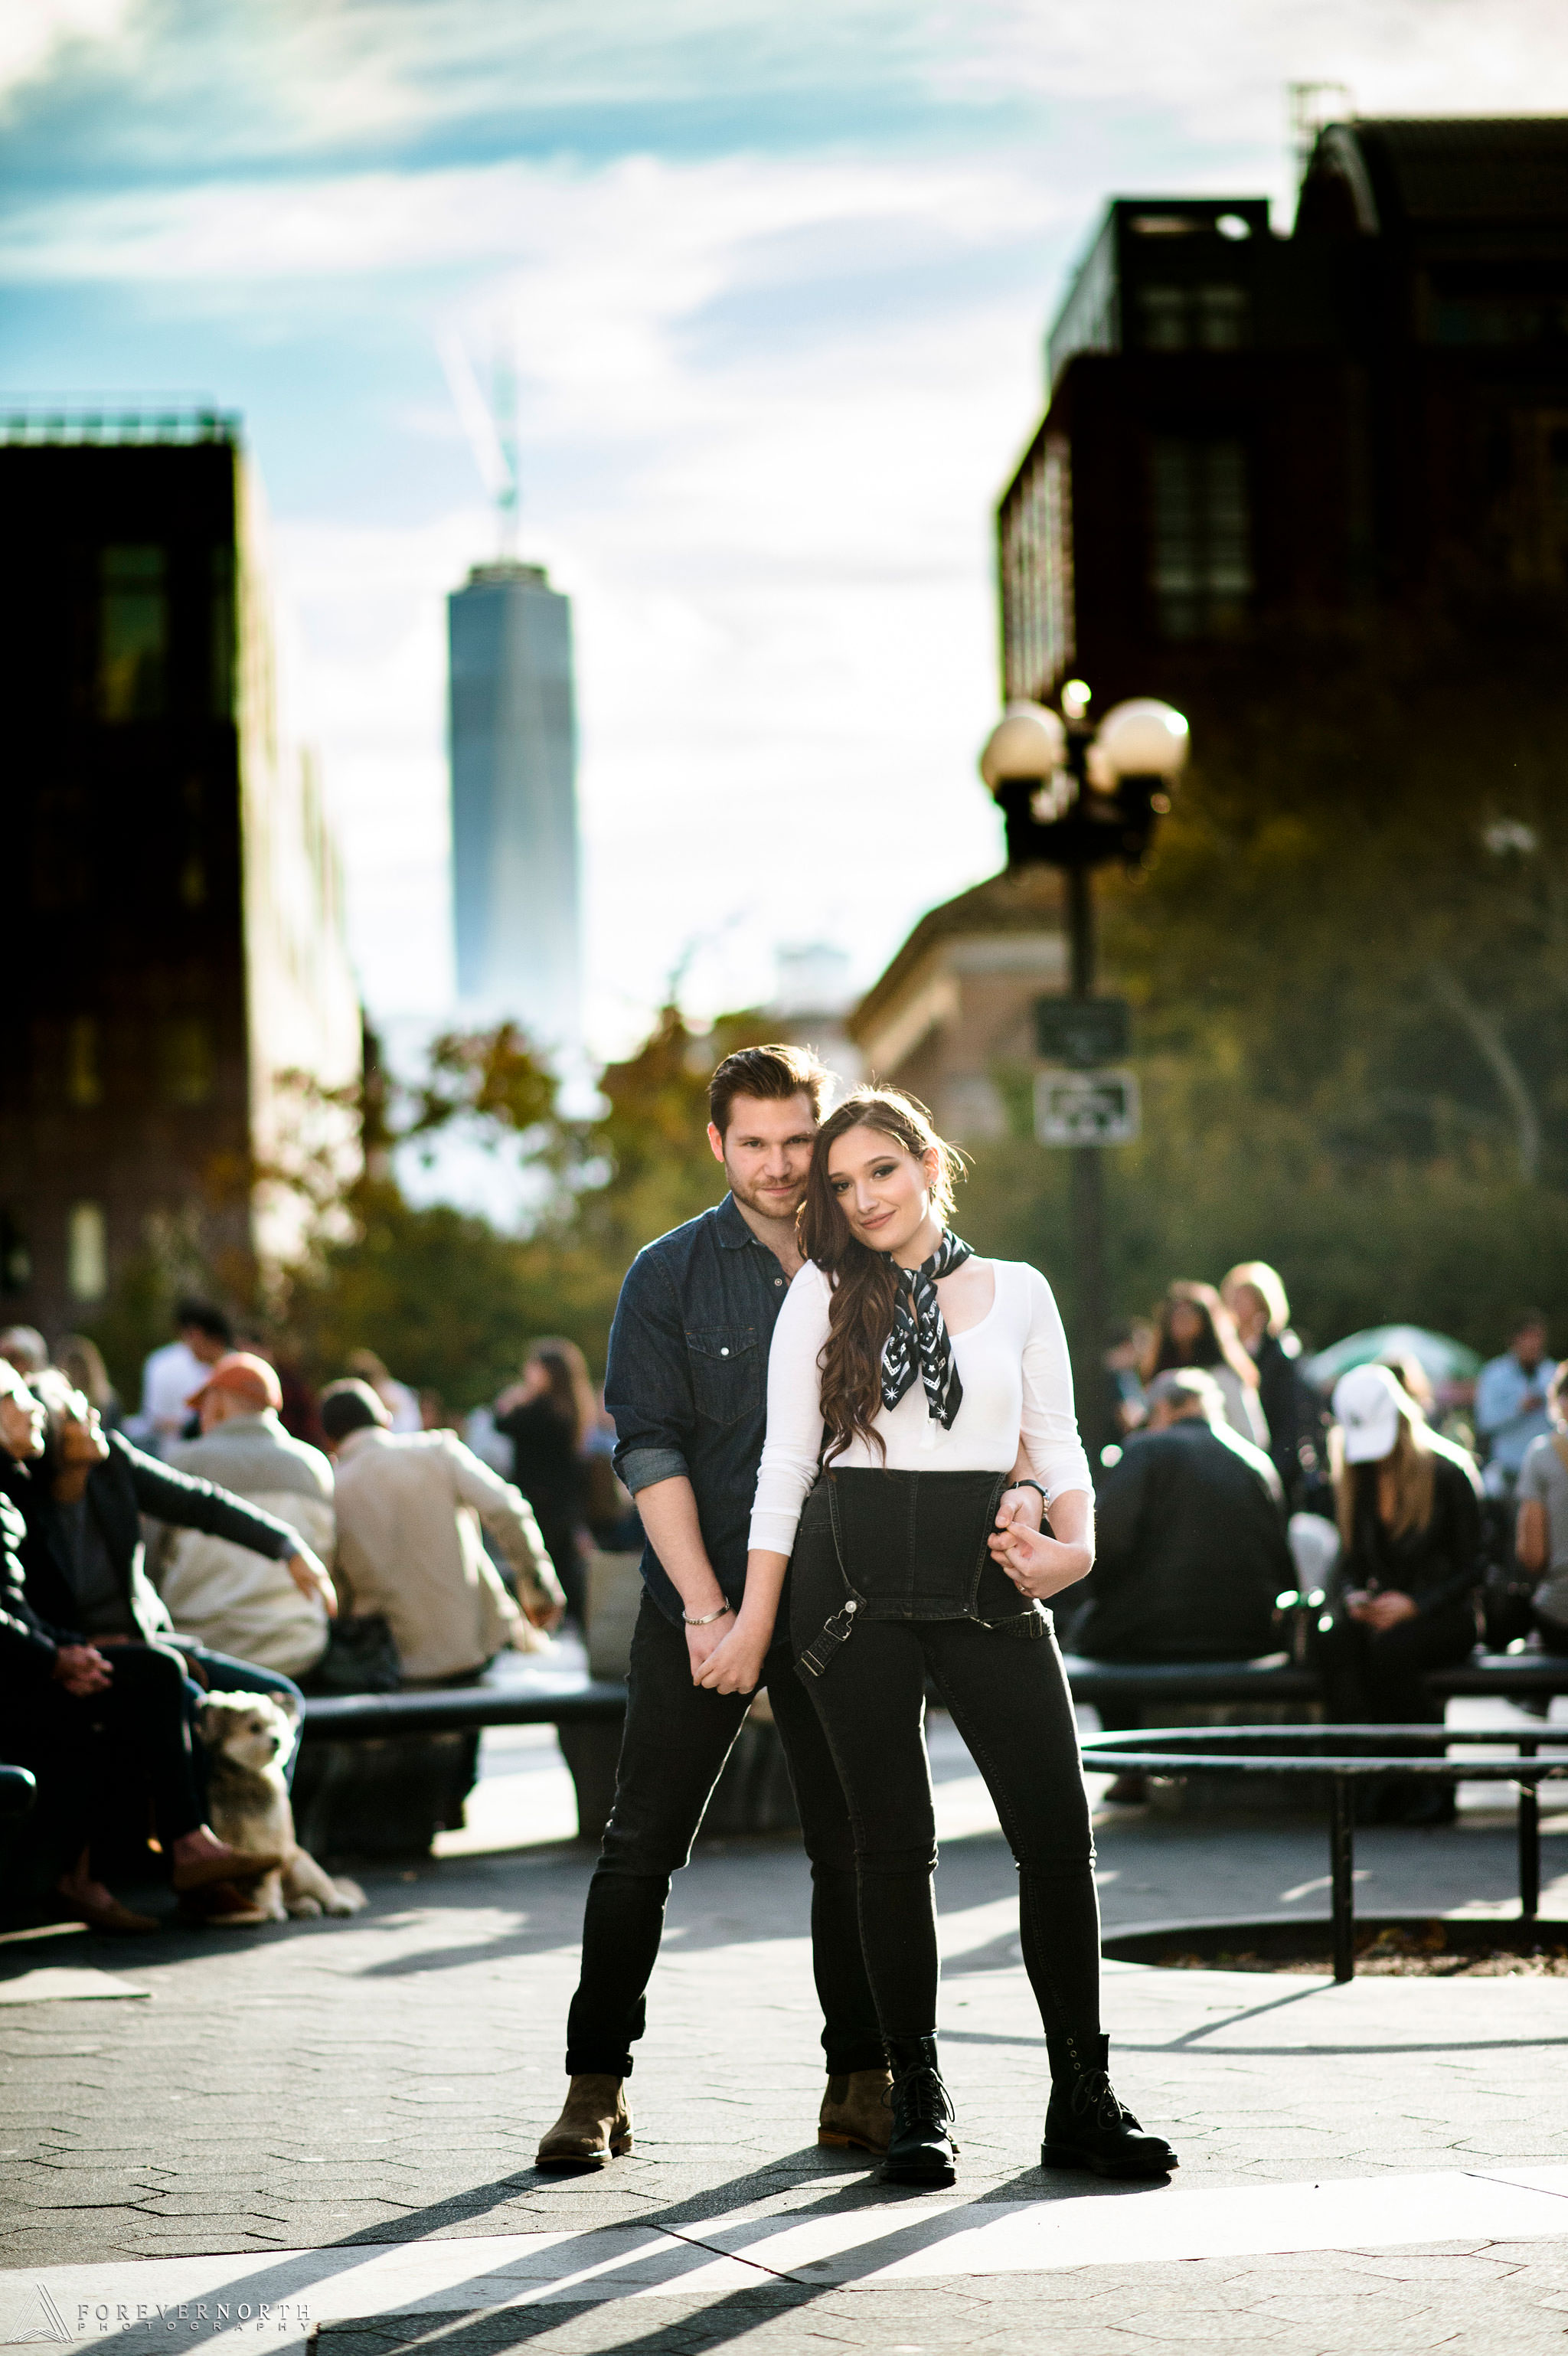 Kulper-Washington-Square-Park-Engagement-Photos-02.jpg